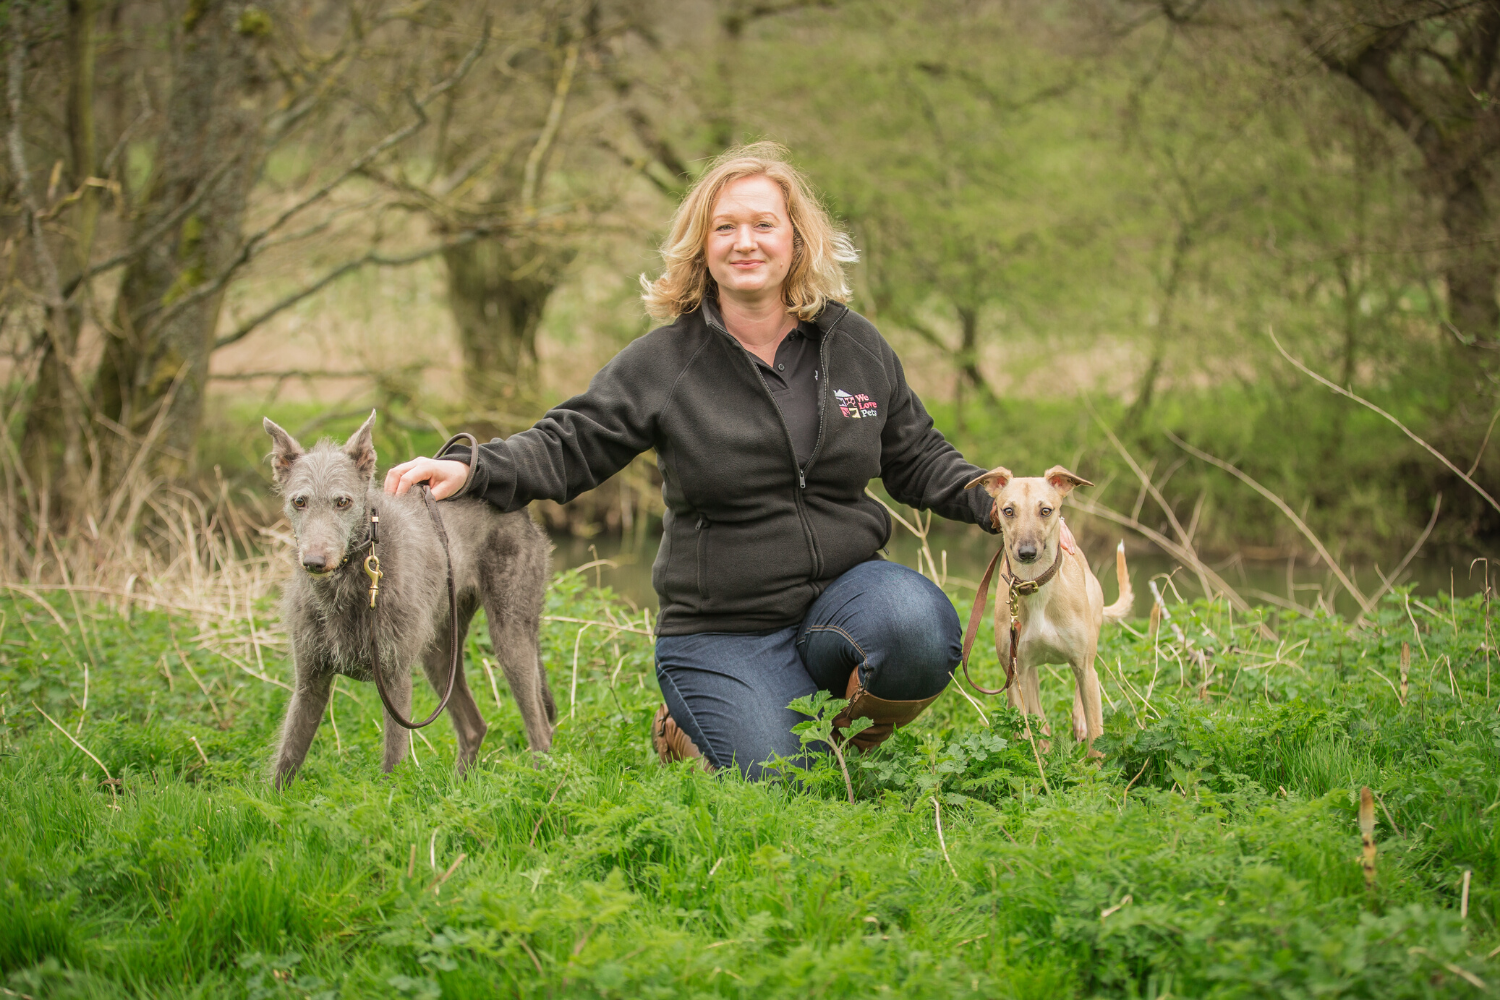 Dog walker and pet sitter in Yateley. We treat your pet as if they were our own.